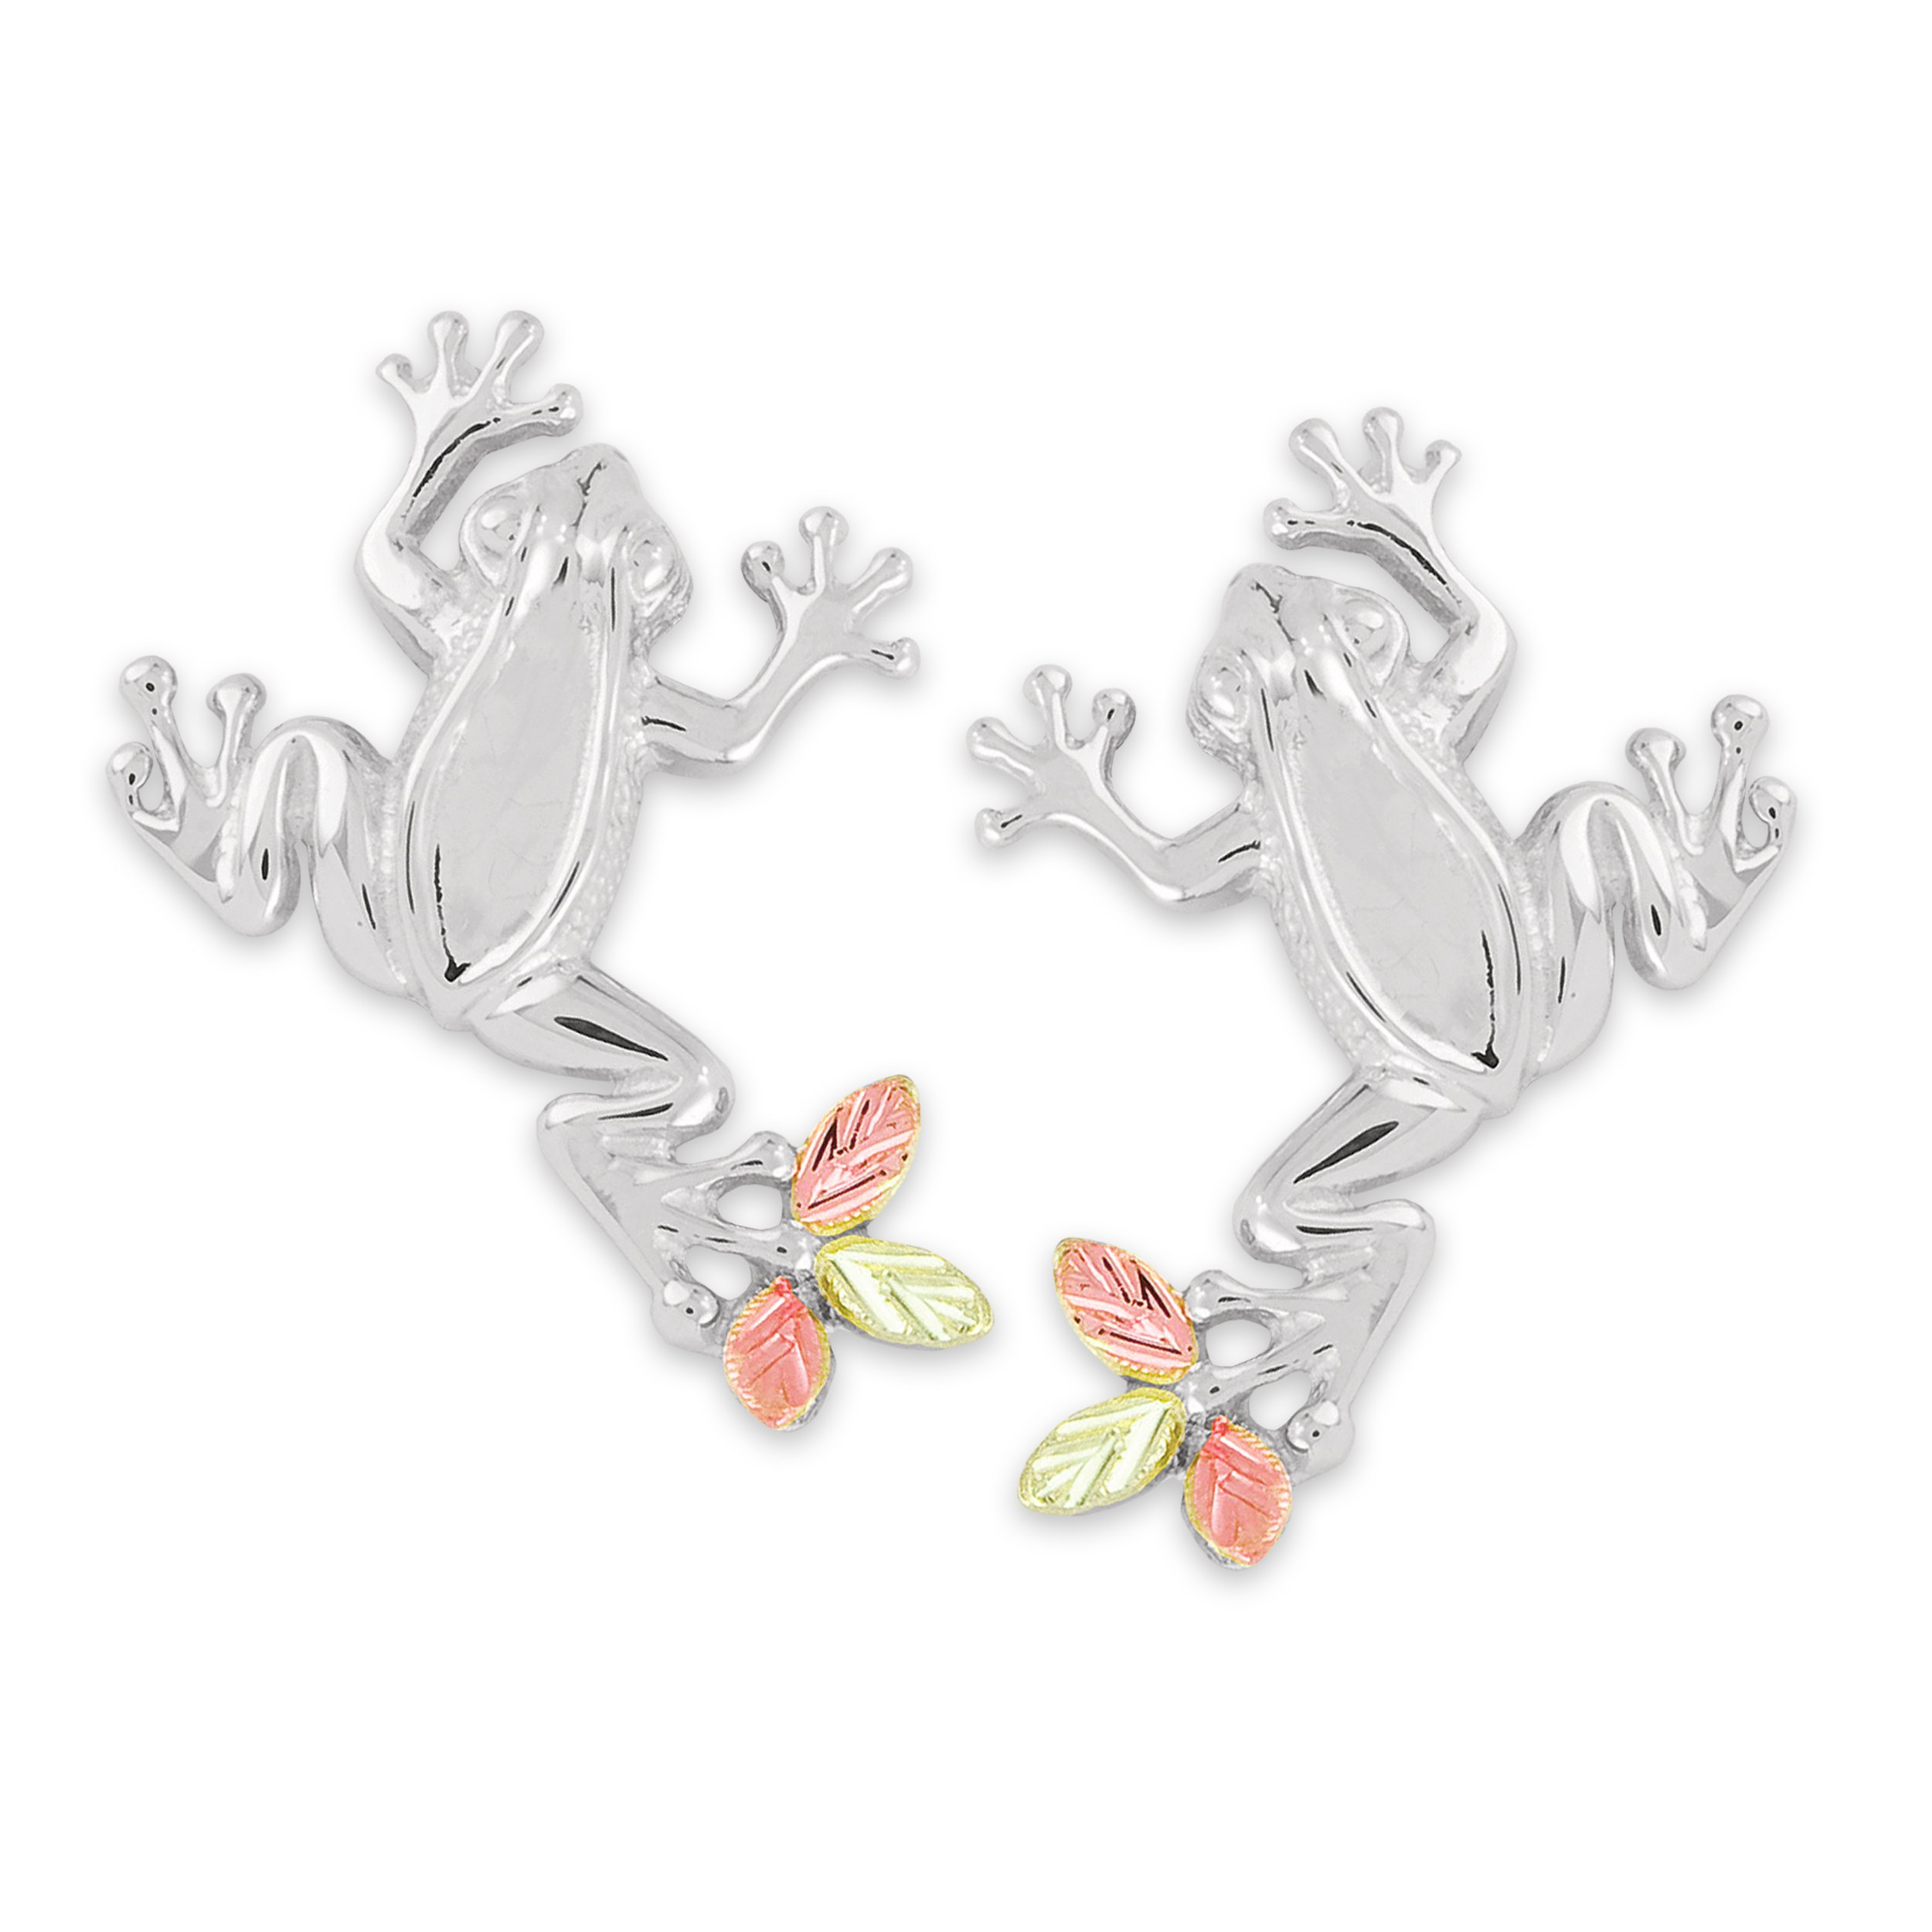 Petite Frog Design Earrings, Sterling Silver, 12k Green and Rose Gold Black Hills Gold Motif